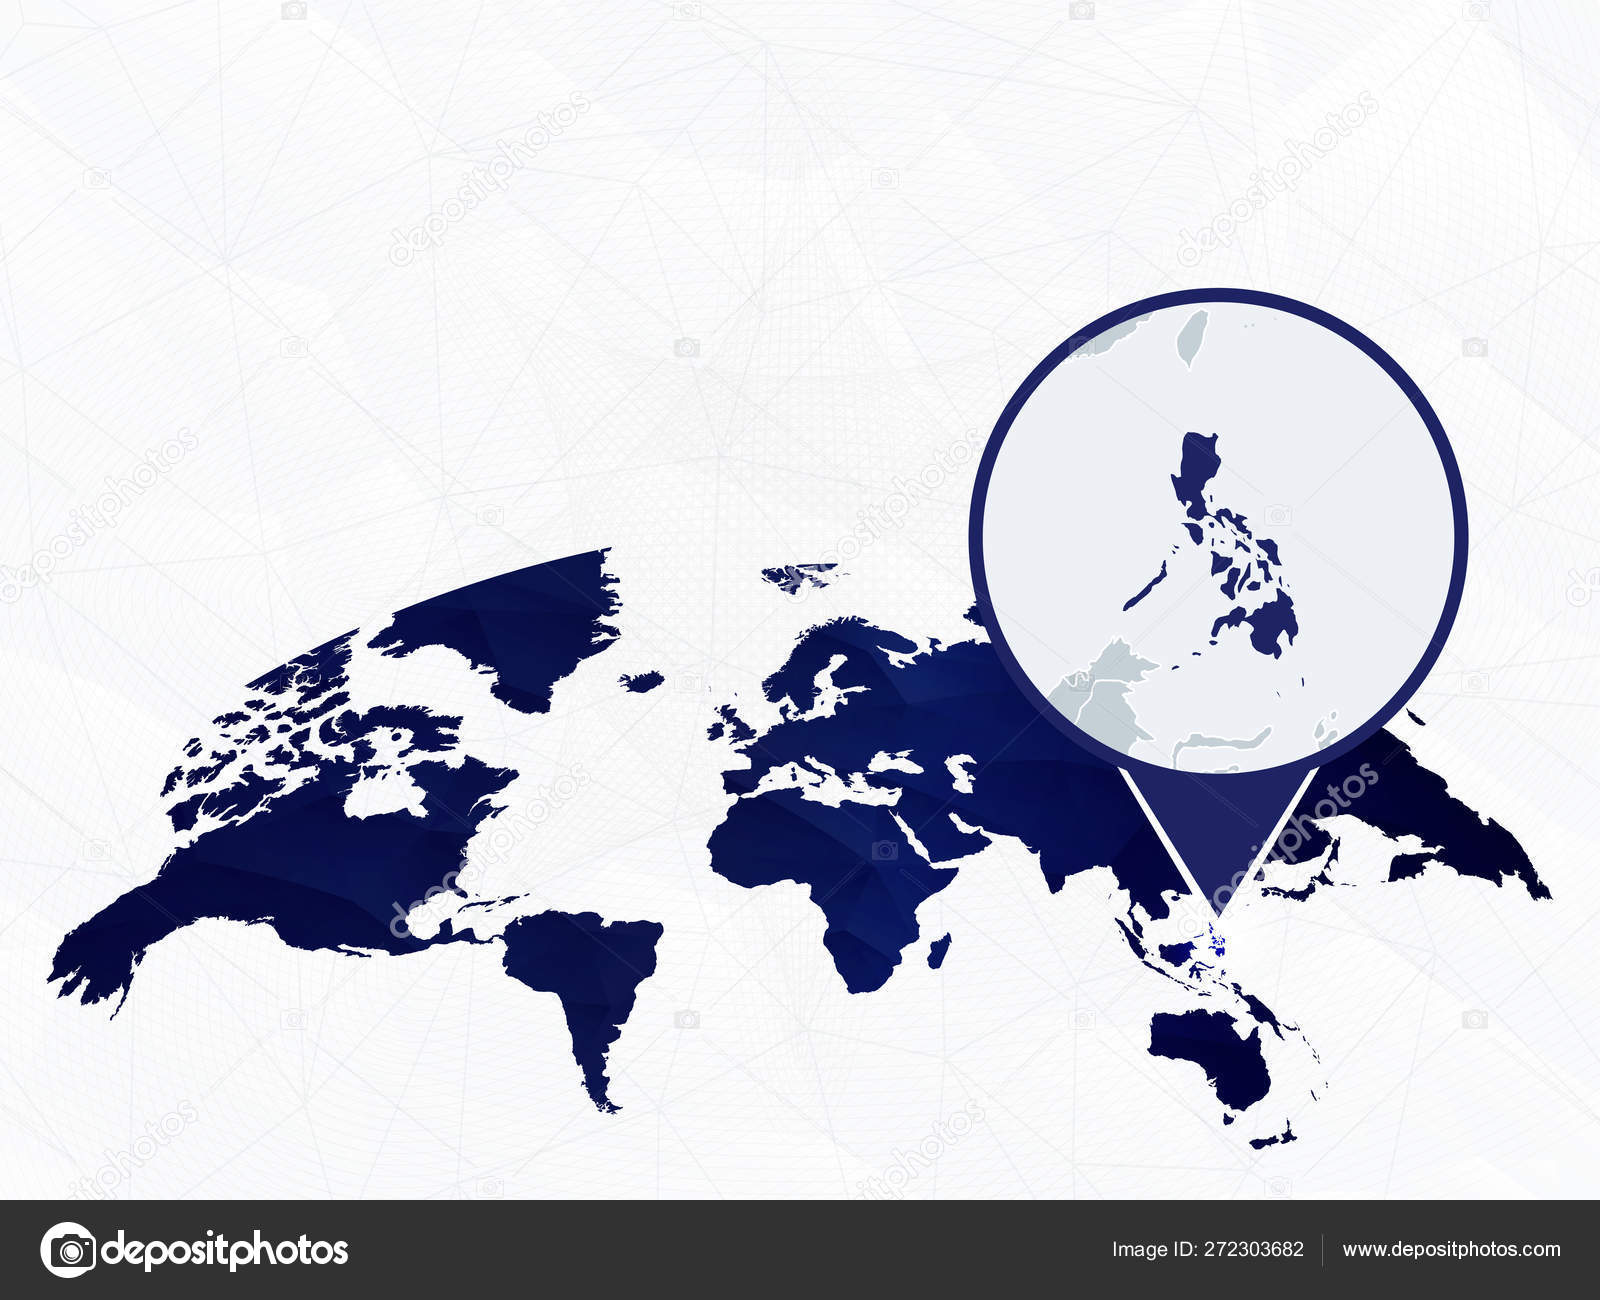 Philippines detailed map highlighted on blue rounded World Map ... on map showing philippines, map of philippines in imperialism, map of philippines in asia, map of bohol island philippines, map of morocco and surrounding countries, map of philippines on world map,